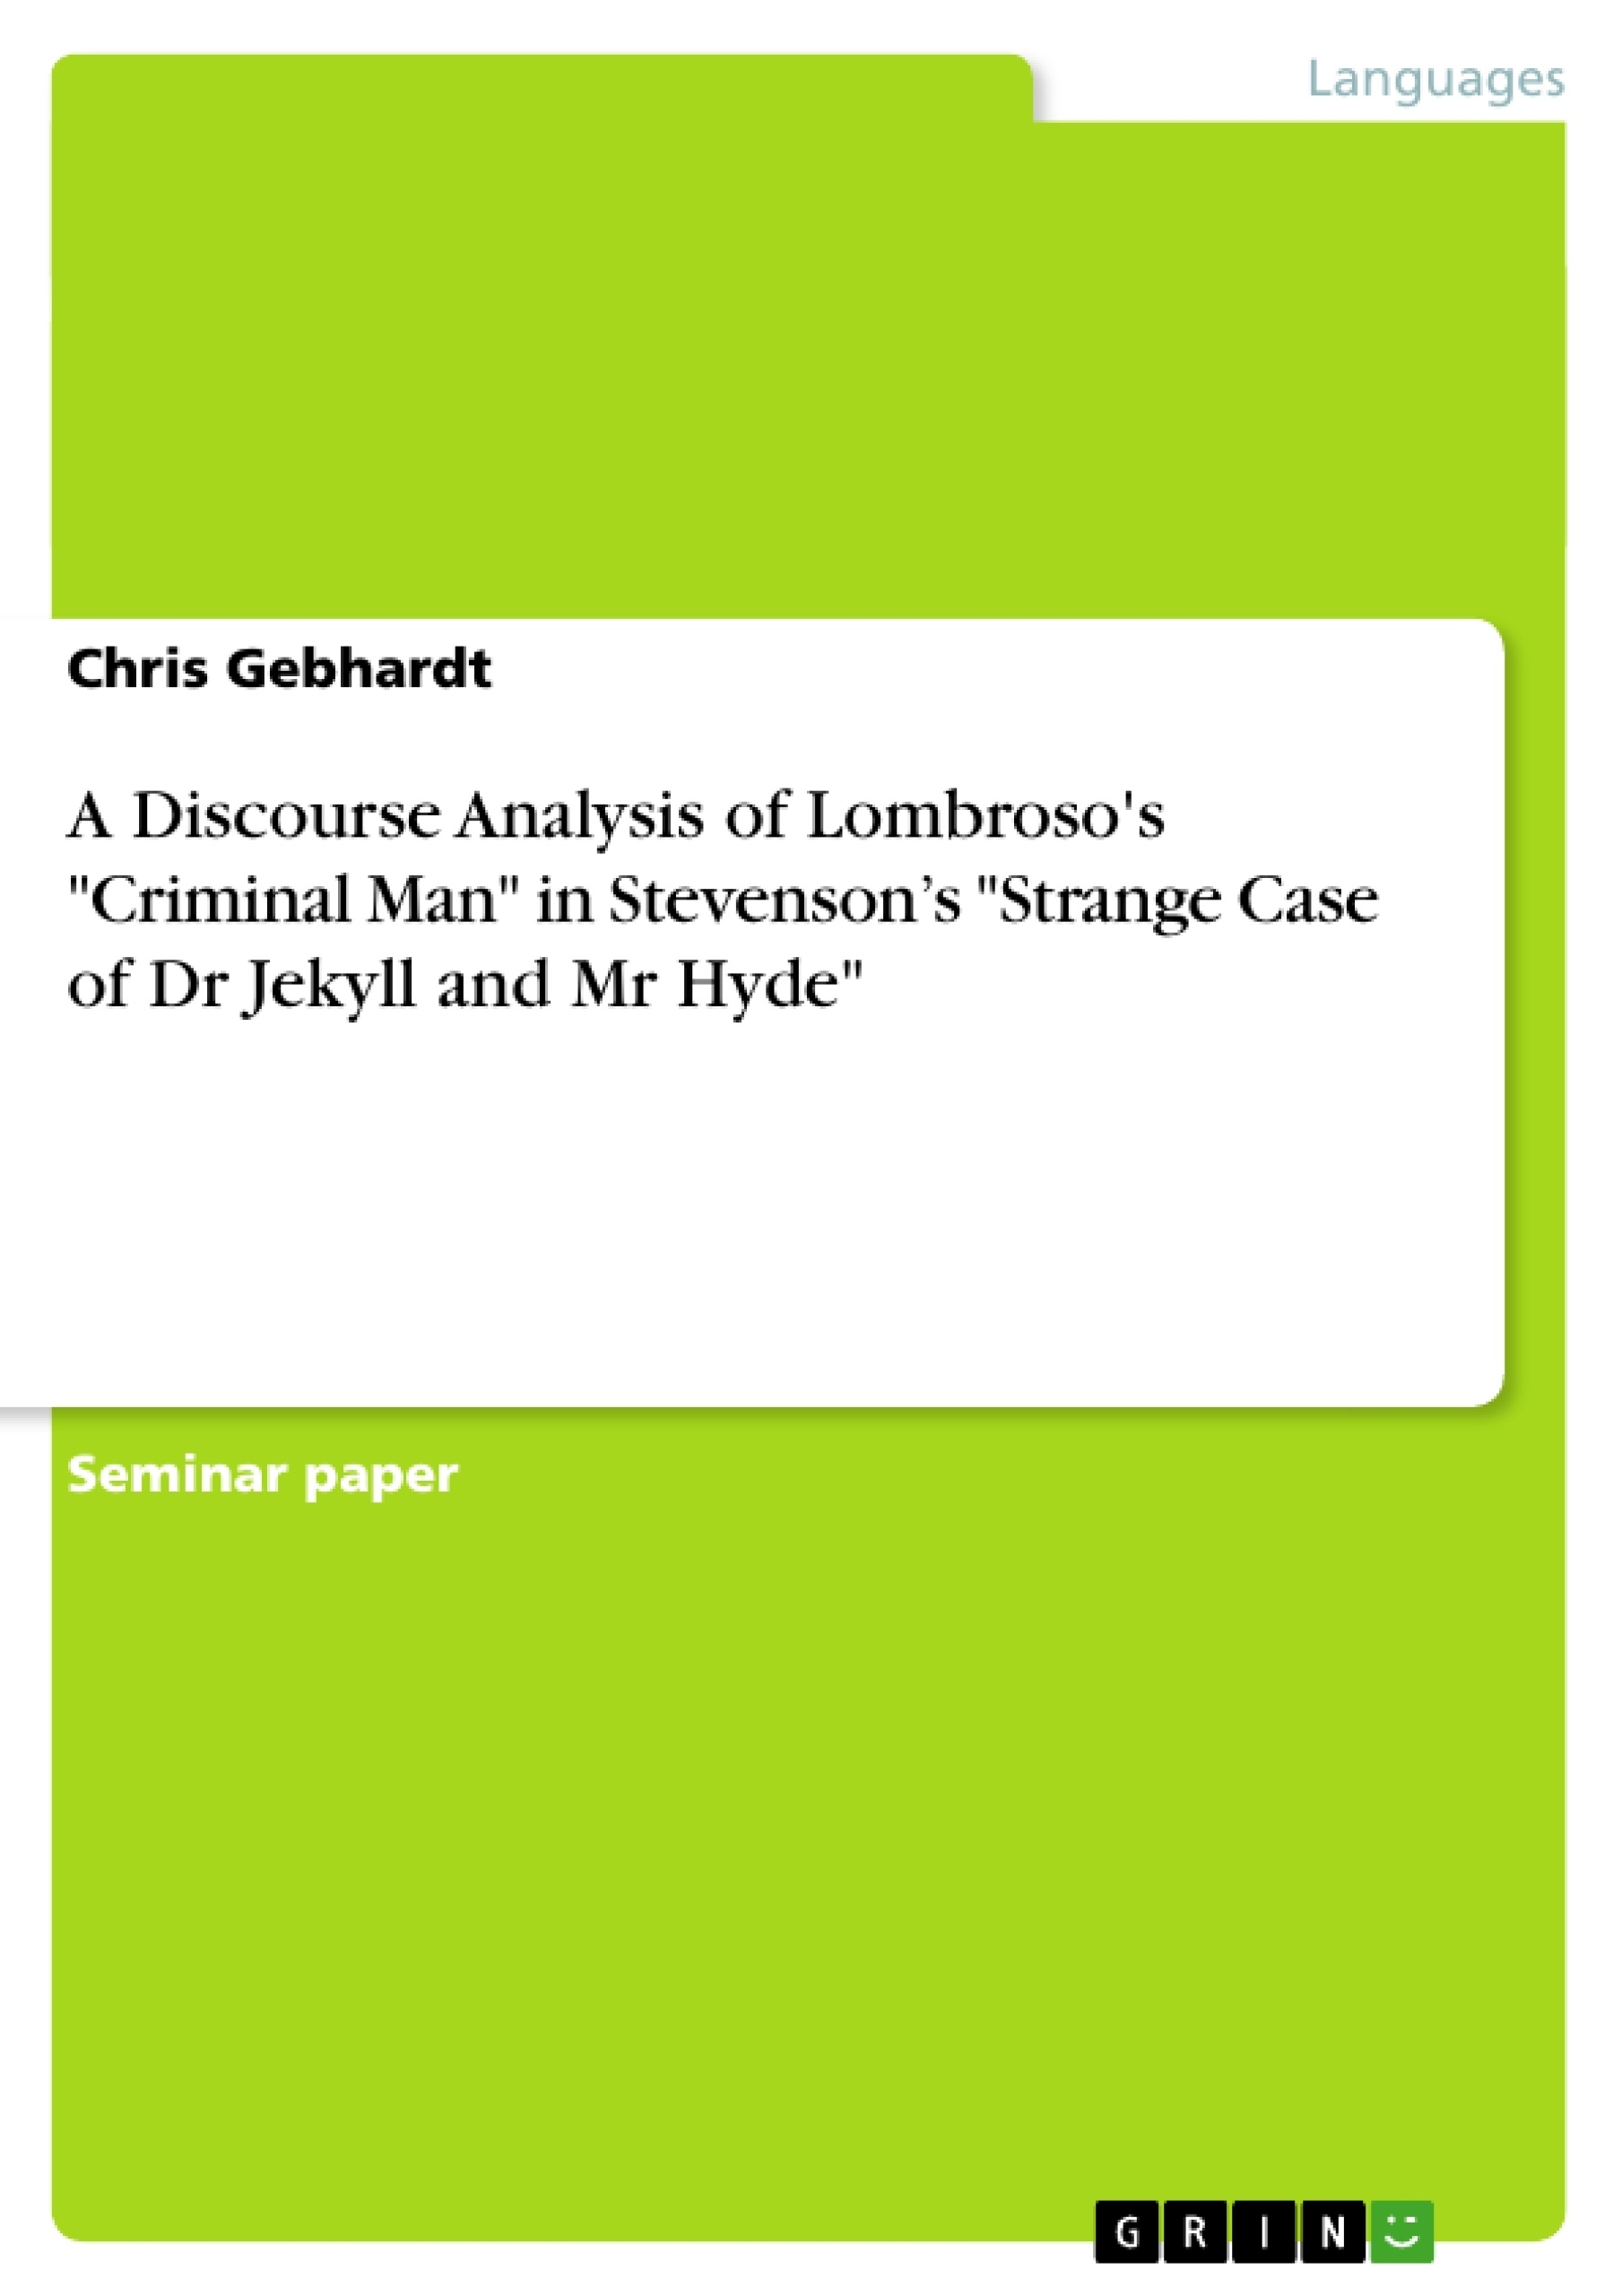 """Title: A Discourse Analysis of Lombroso's """"Criminal Man"""" in Stevenson's """"Strange Case of Dr Jekyll and Mr Hyde"""""""